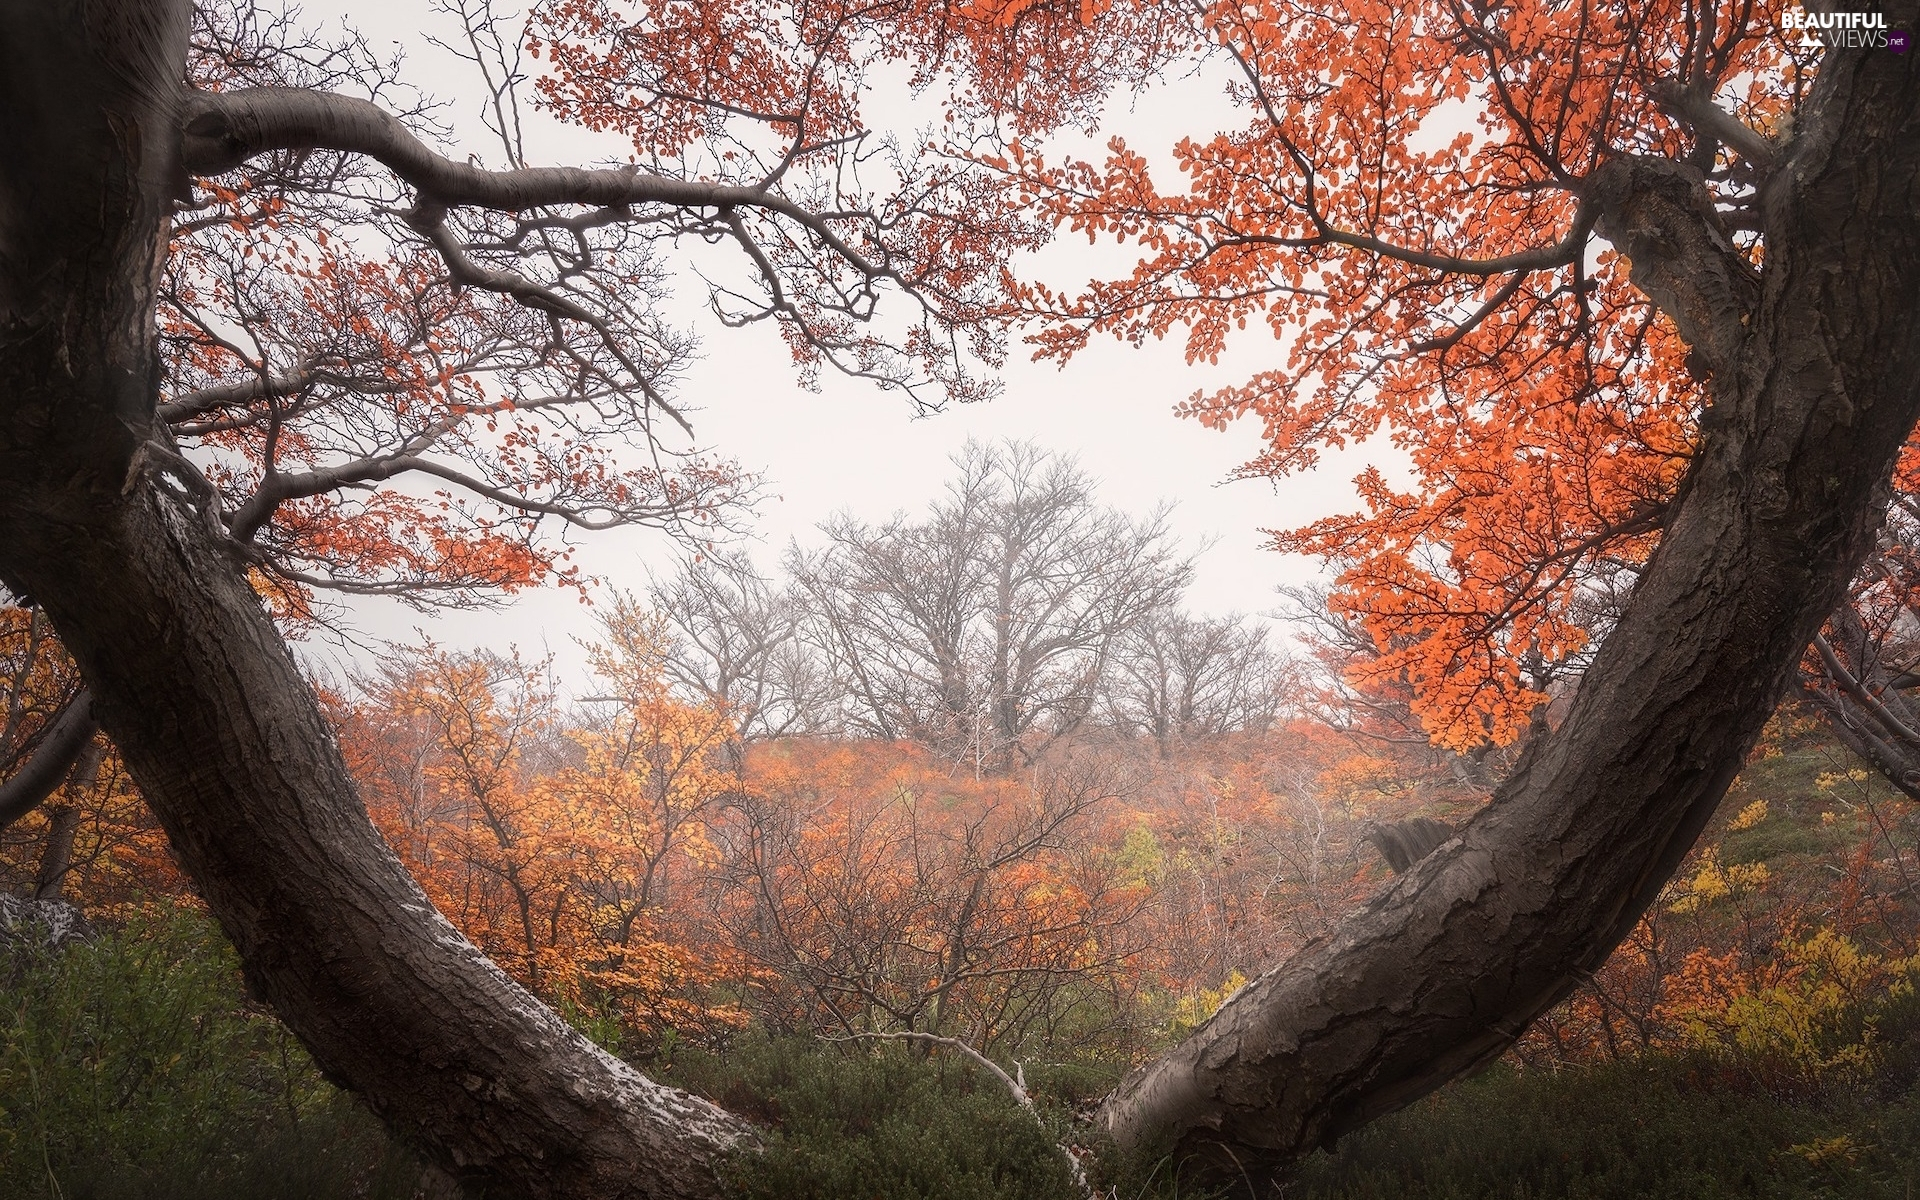 Stems, Fog, trees, viewes, autumn